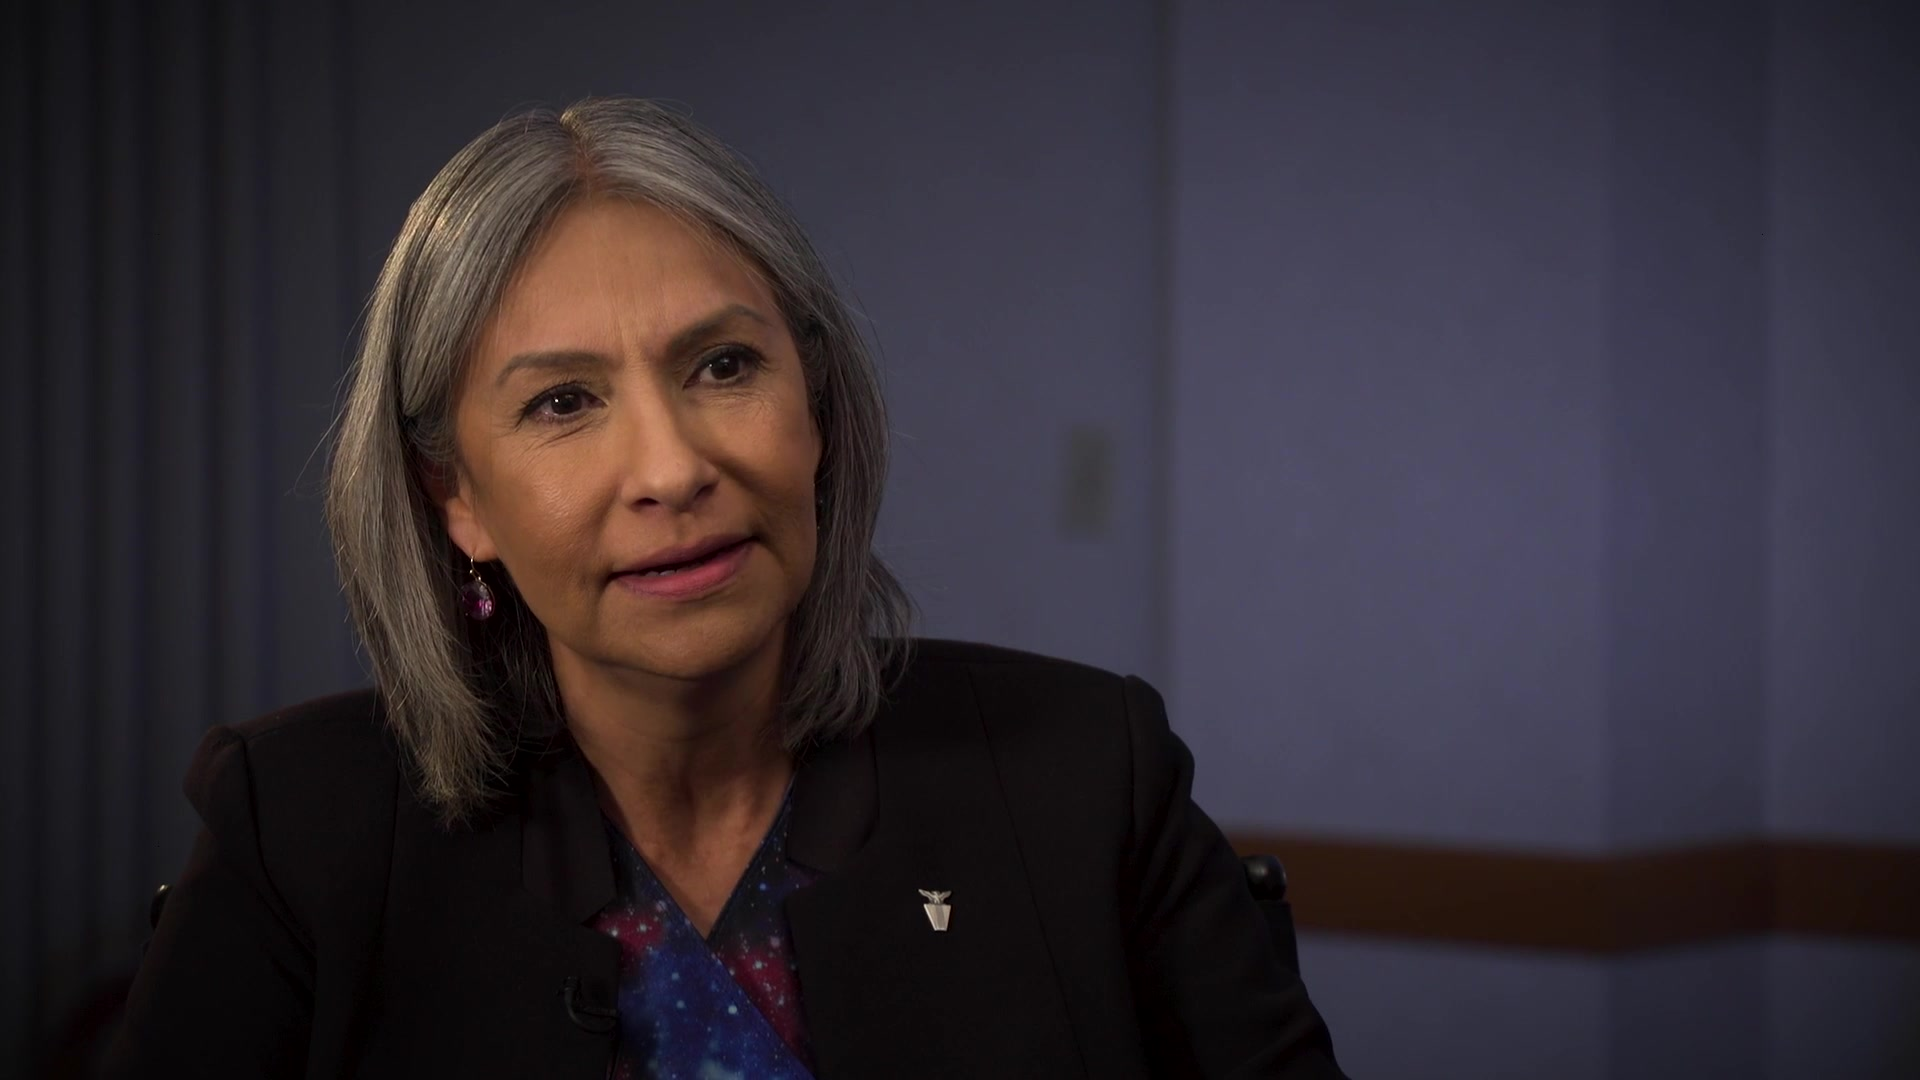 Sara Keller, Deputy Director of Logistics, Civil Engineering, Force Protection & Nuclear Integration, Air Force Materiel Command, Wright-Patterson Air Force Base, Ohio, shares her perspectives on the importance of mentorship, April 23, 2019. AFMC shares the impact of mentoring through first-person experiences from its leaders. (U.S. Air Force Video by Ryan Law)